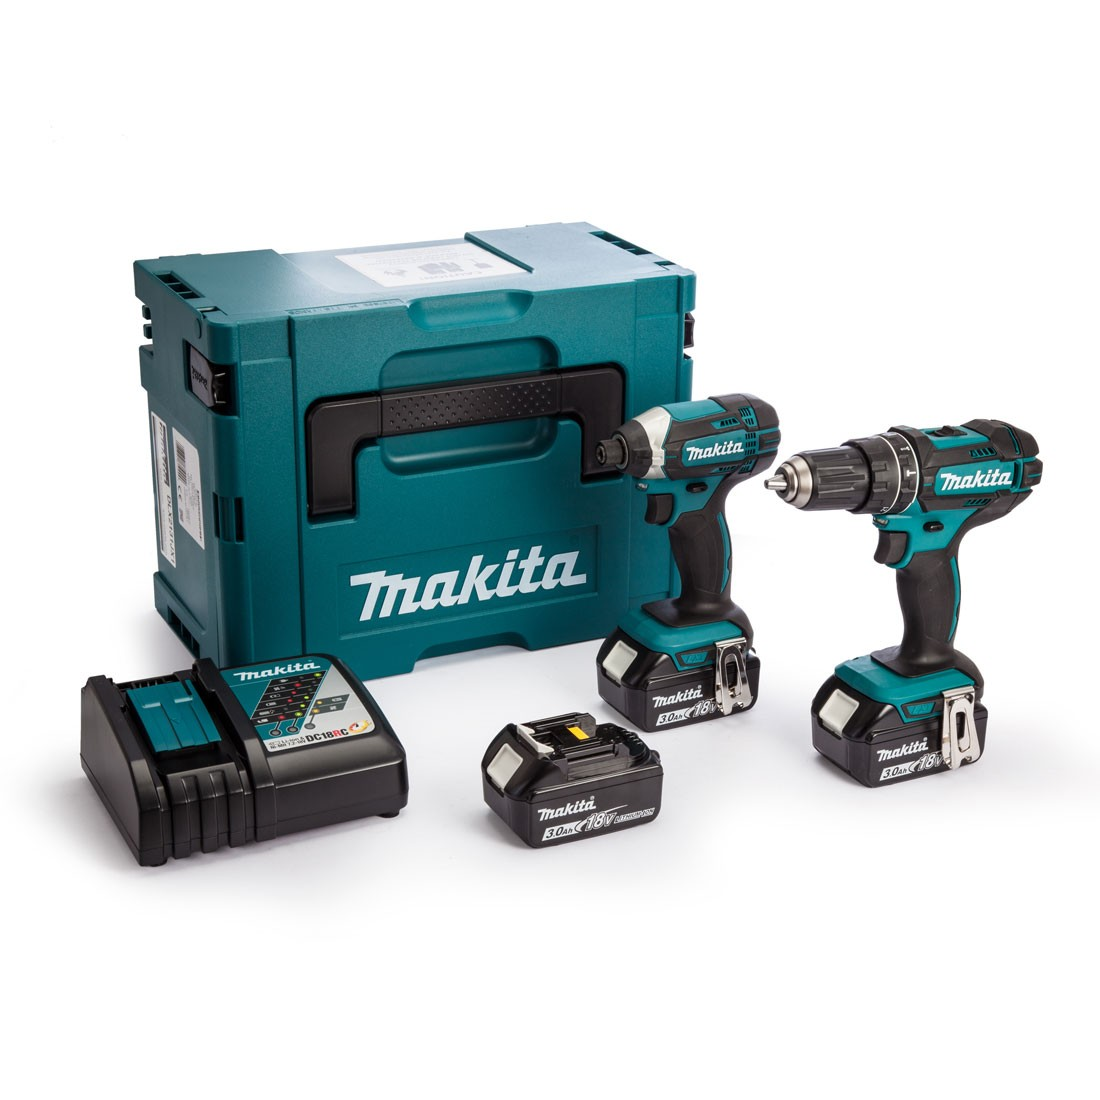 makita dlx2131jx1 18v cordless 2 piece kit dhp482 combi dtd152 impact driver inc 3x 3ah. Black Bedroom Furniture Sets. Home Design Ideas